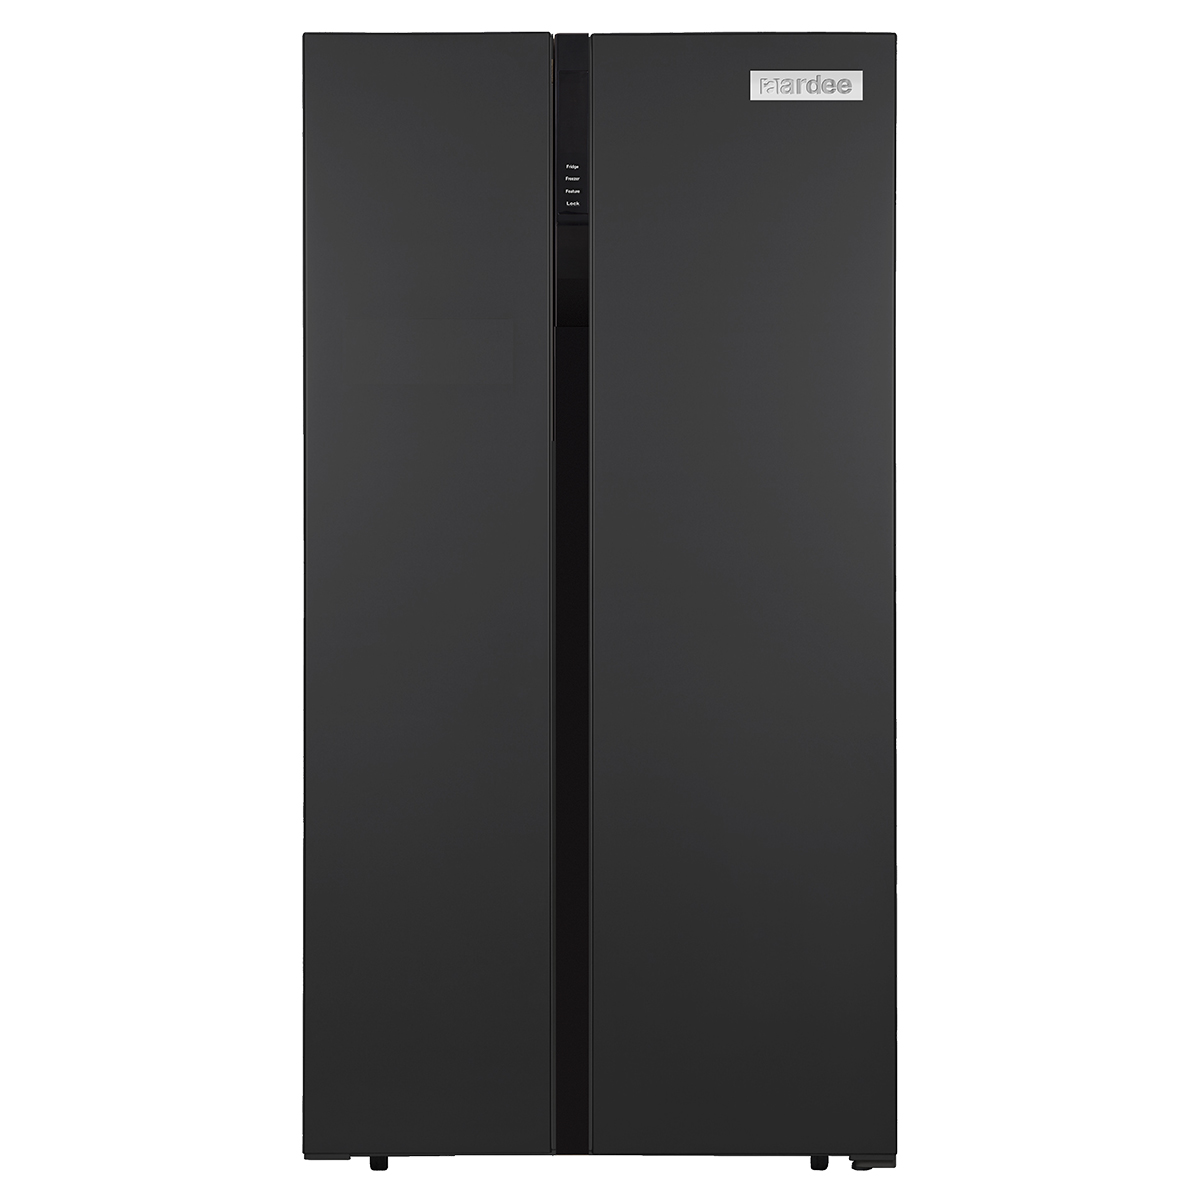 ARRFSBS-500BD Aardee Side by side large fridge